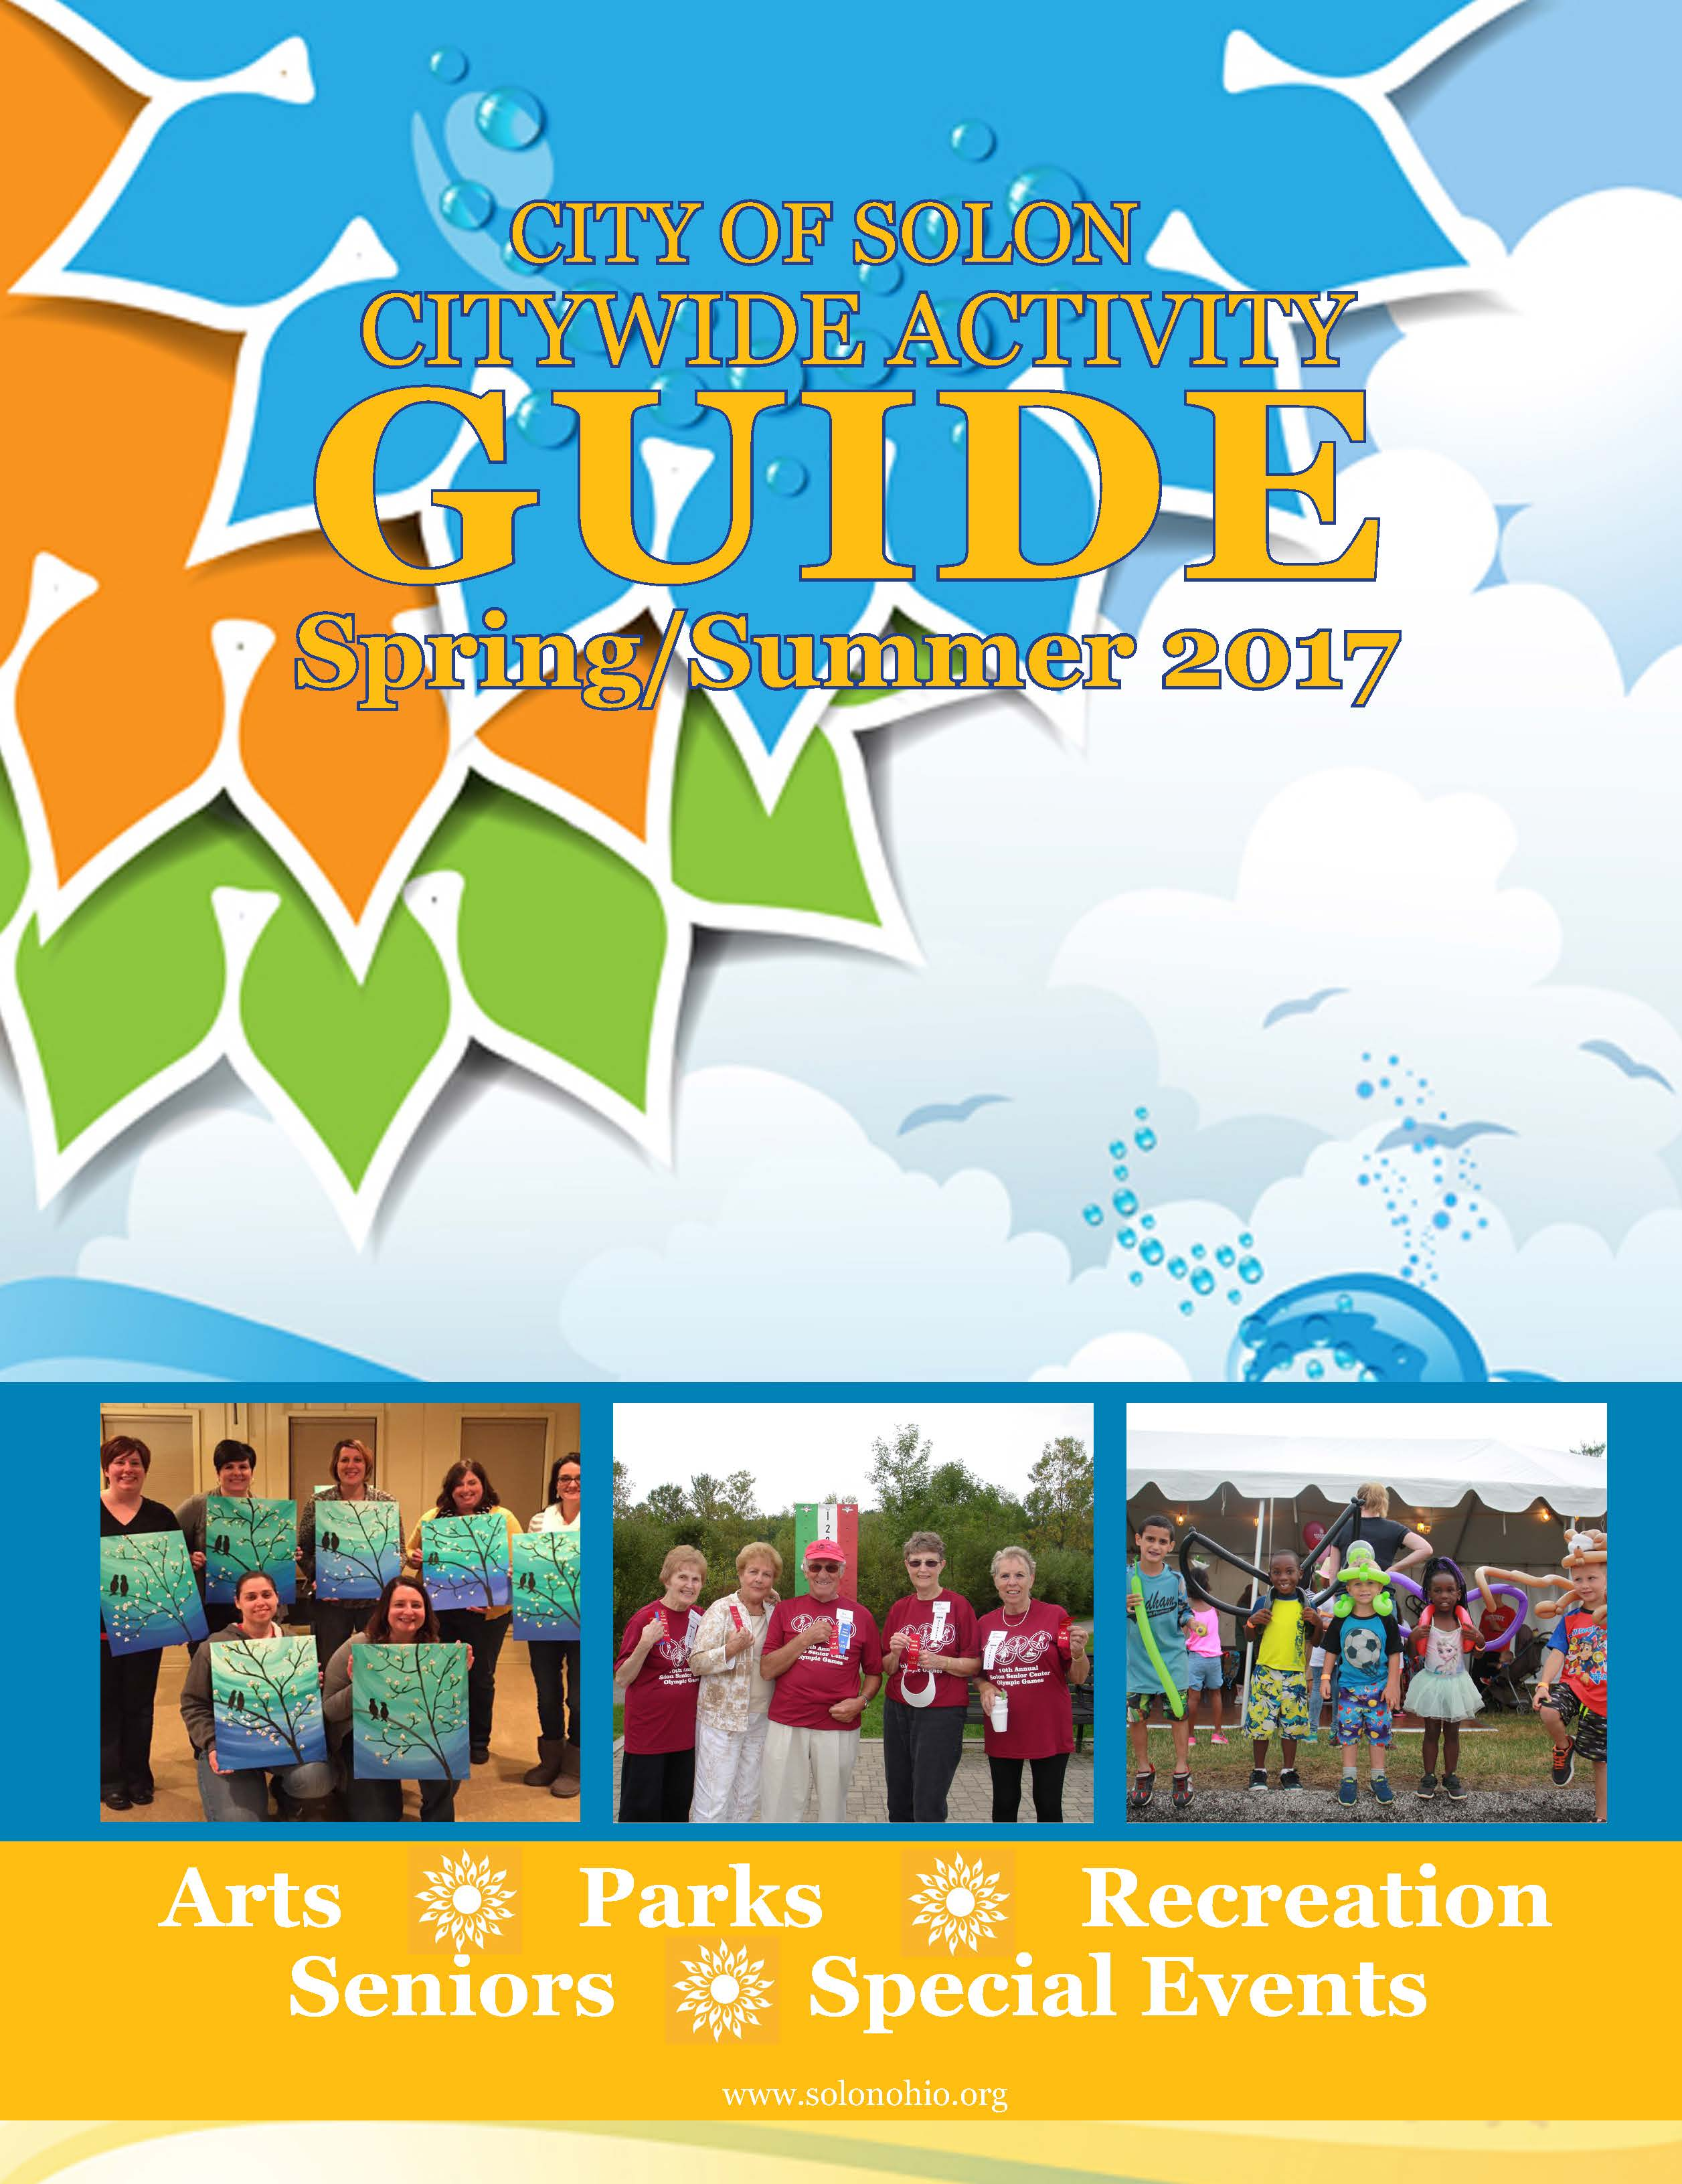 Spring Summer 2017 Citywide Activity Guide web_Page_01